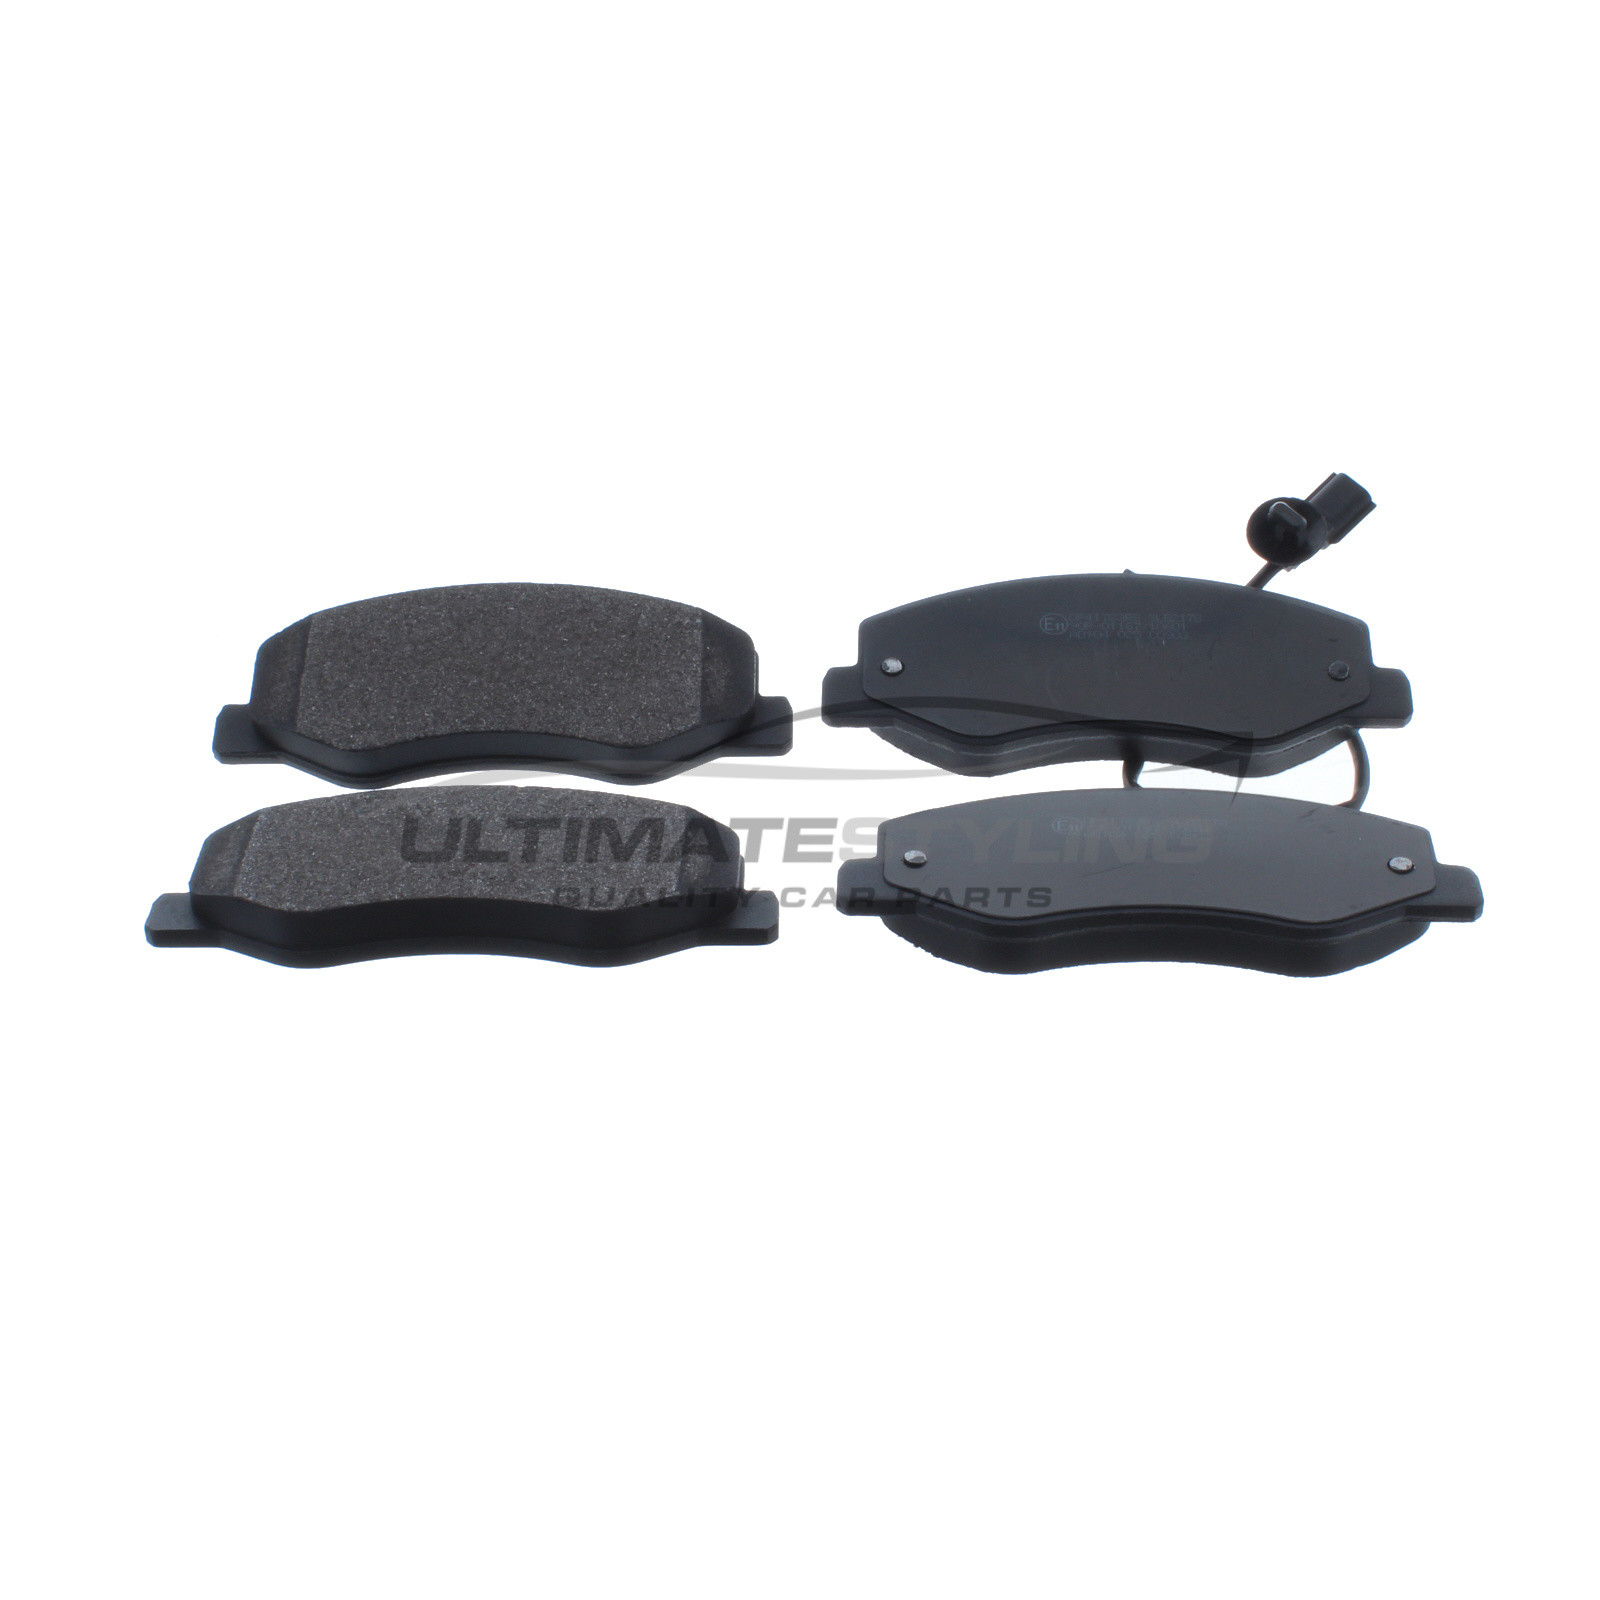 hight resolution of nissan nv400 renault master vauxhall movano brake pads rear